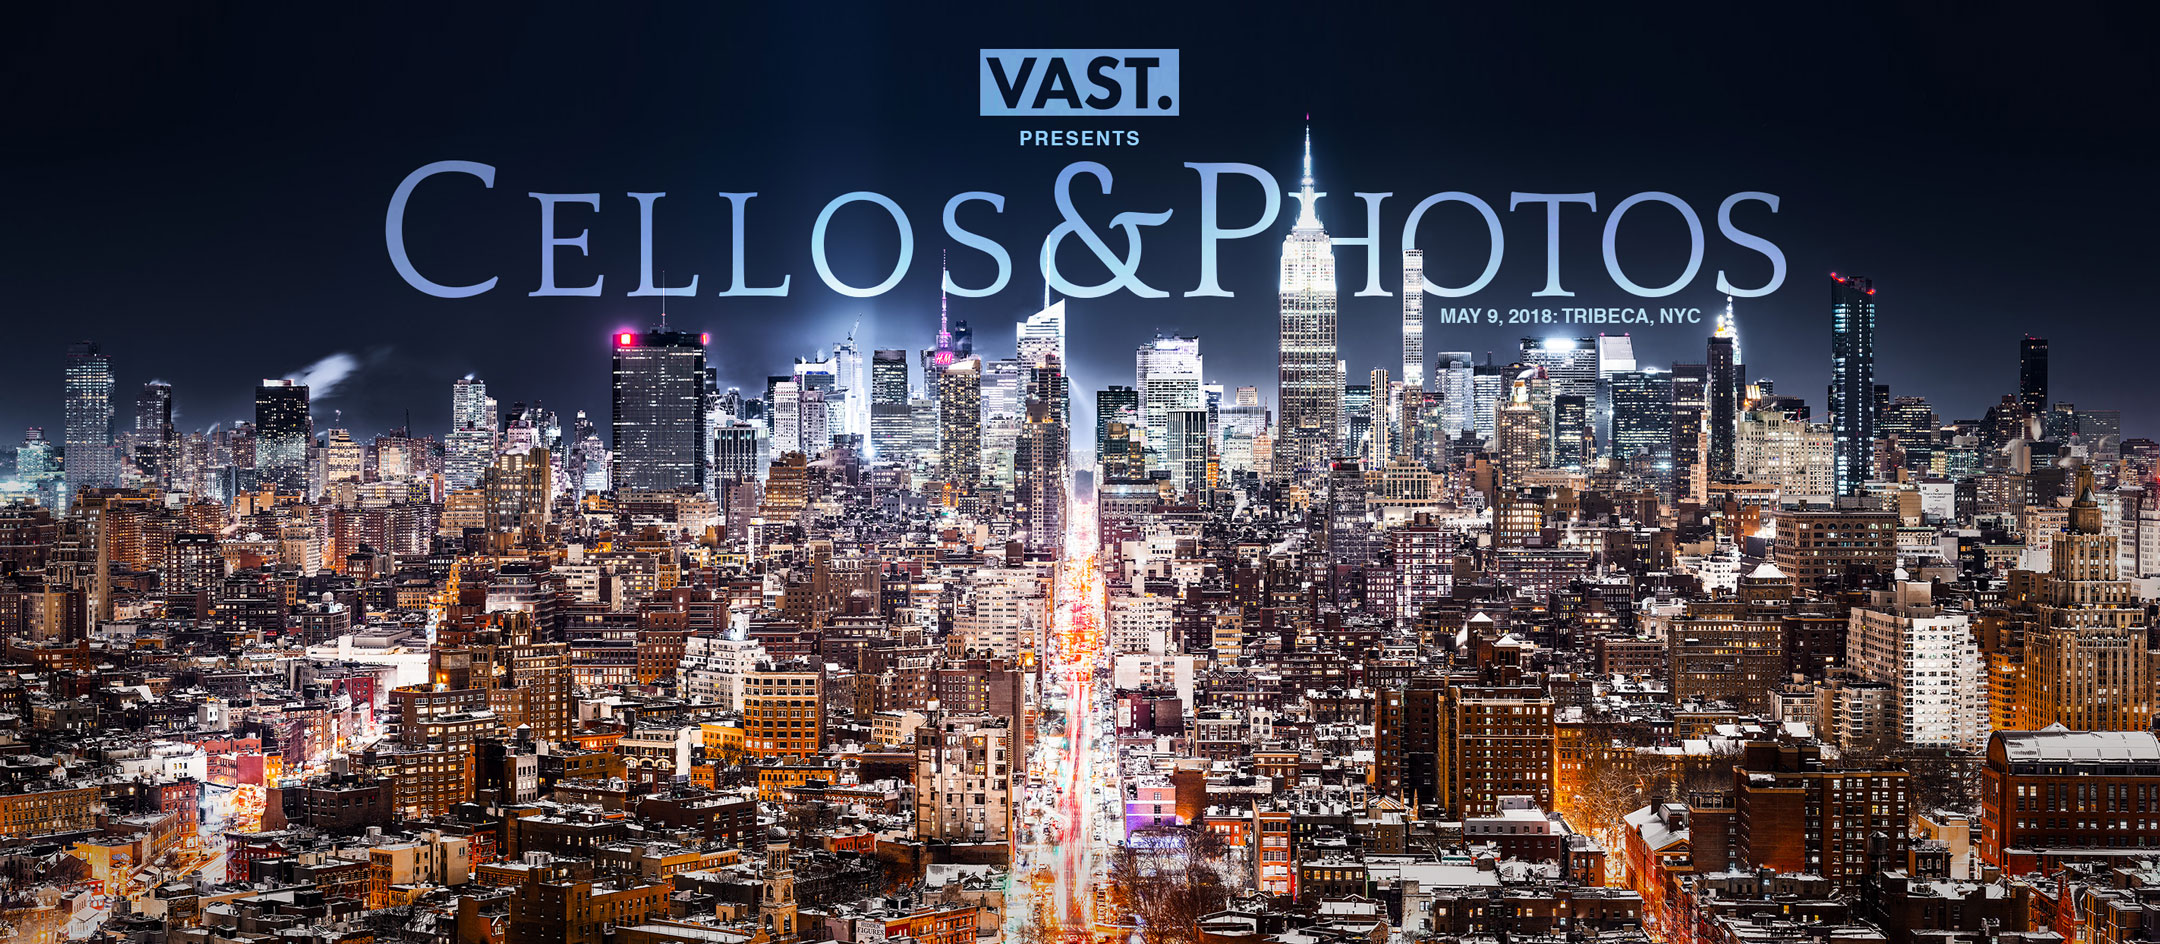 Private art event hosted by VAST, showcasing high resolution VAST photos of New York City and a cello octet